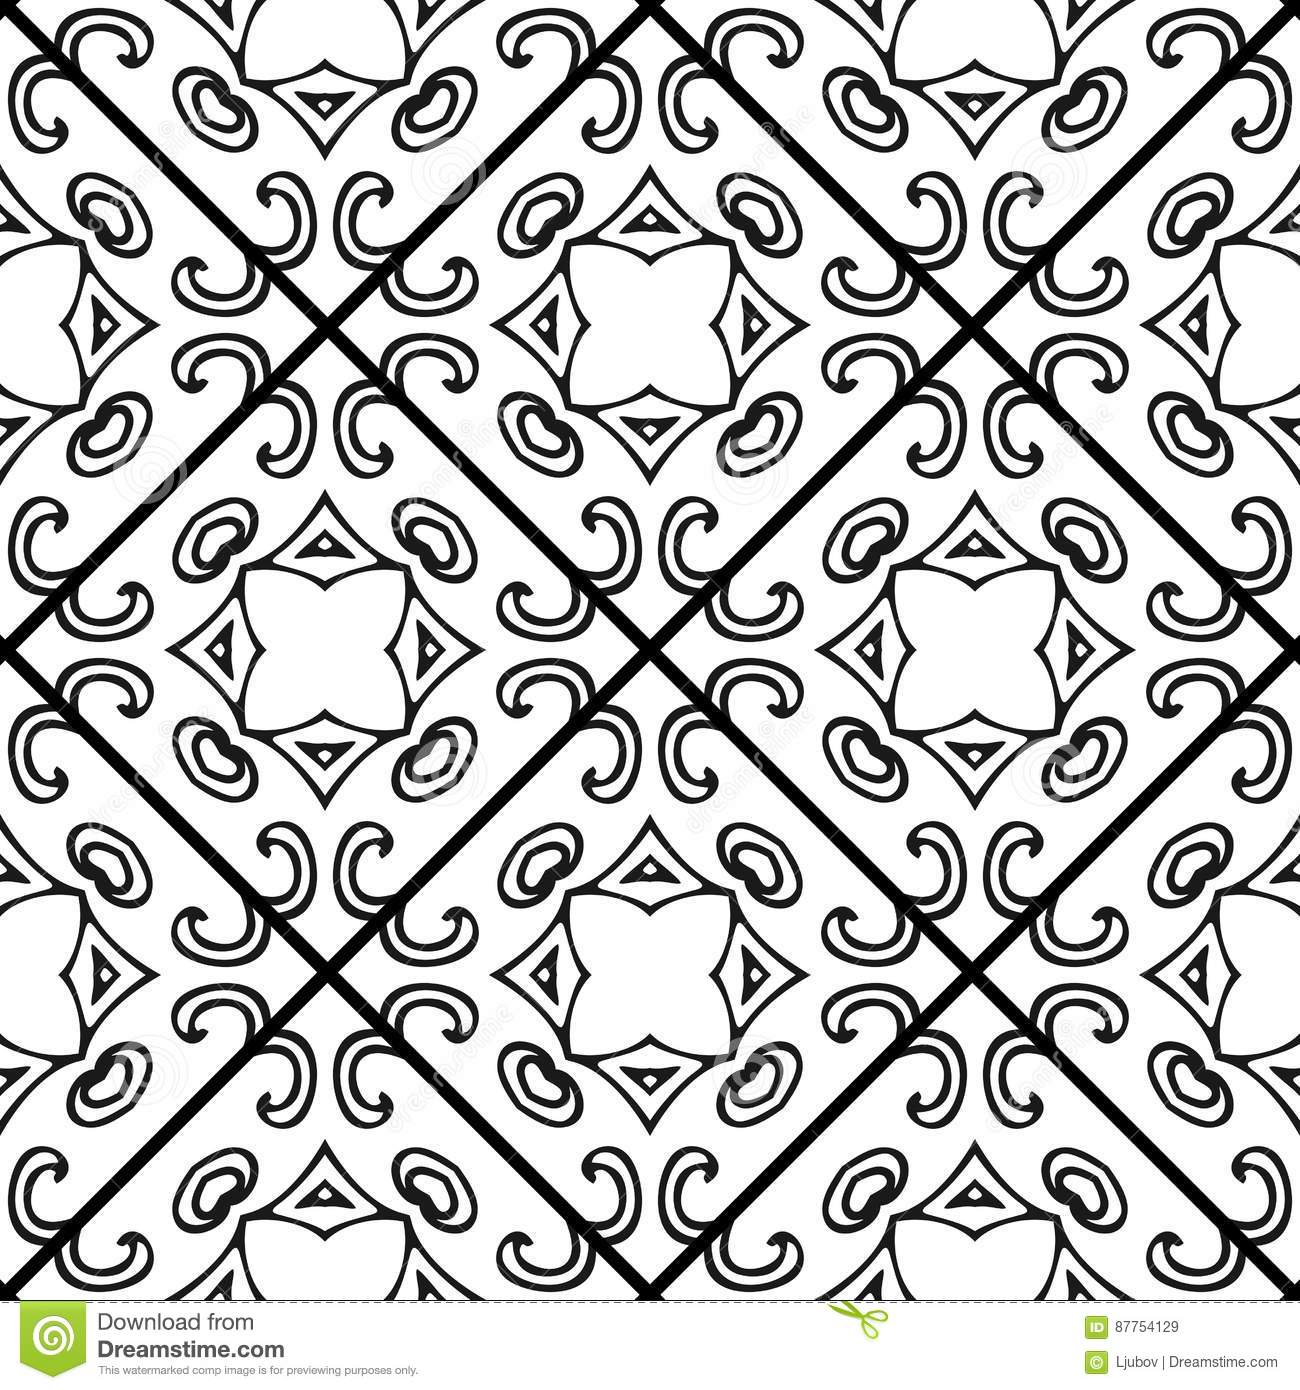 Black And White Tile Pattern Royalty Free Stock Photo